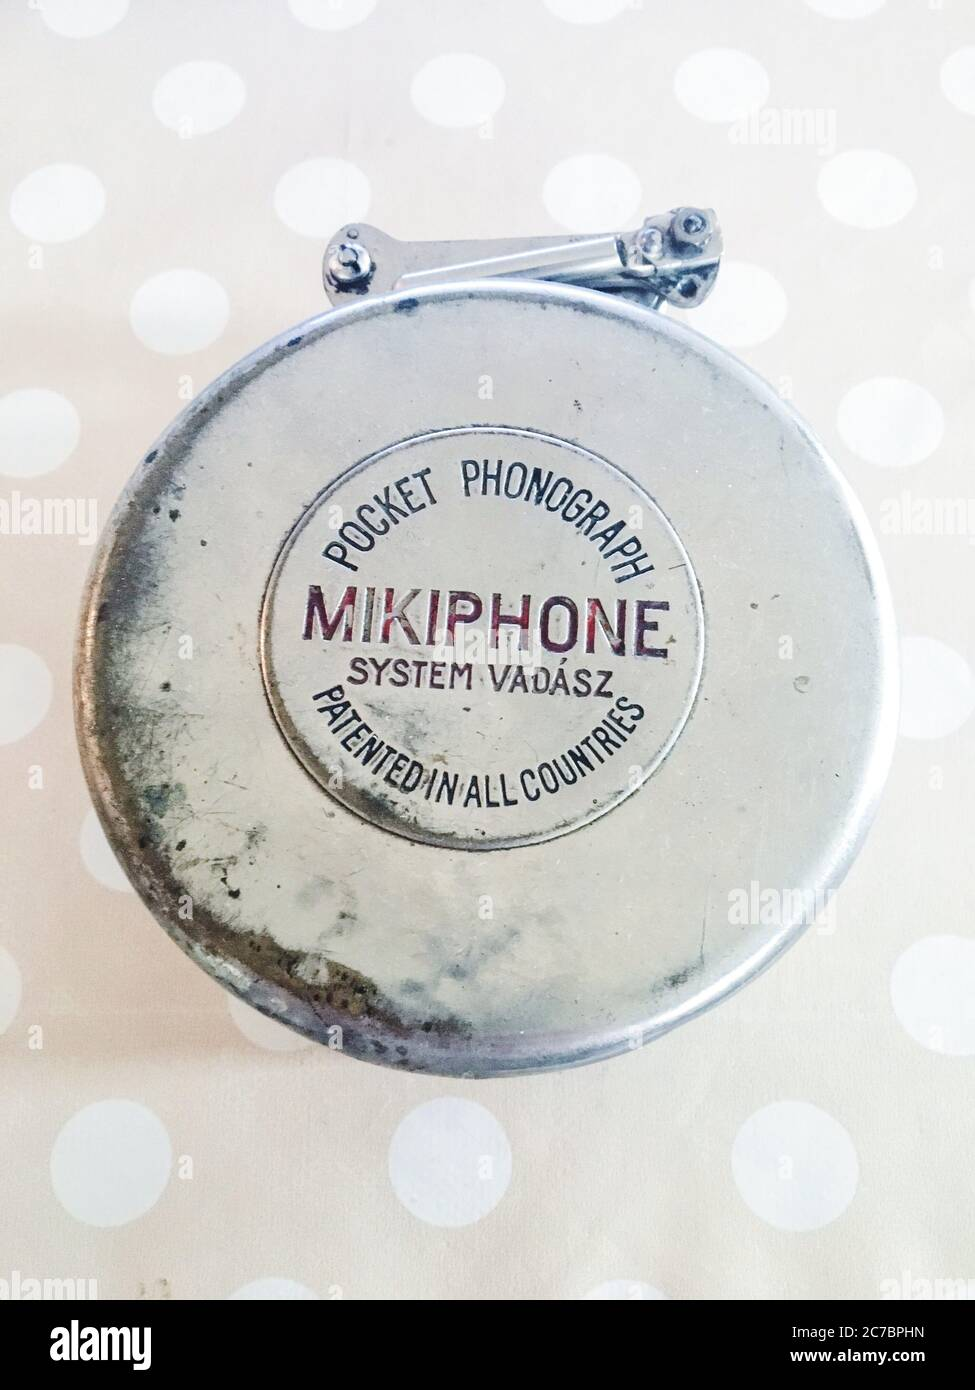 Mikiphone Mikiphone for